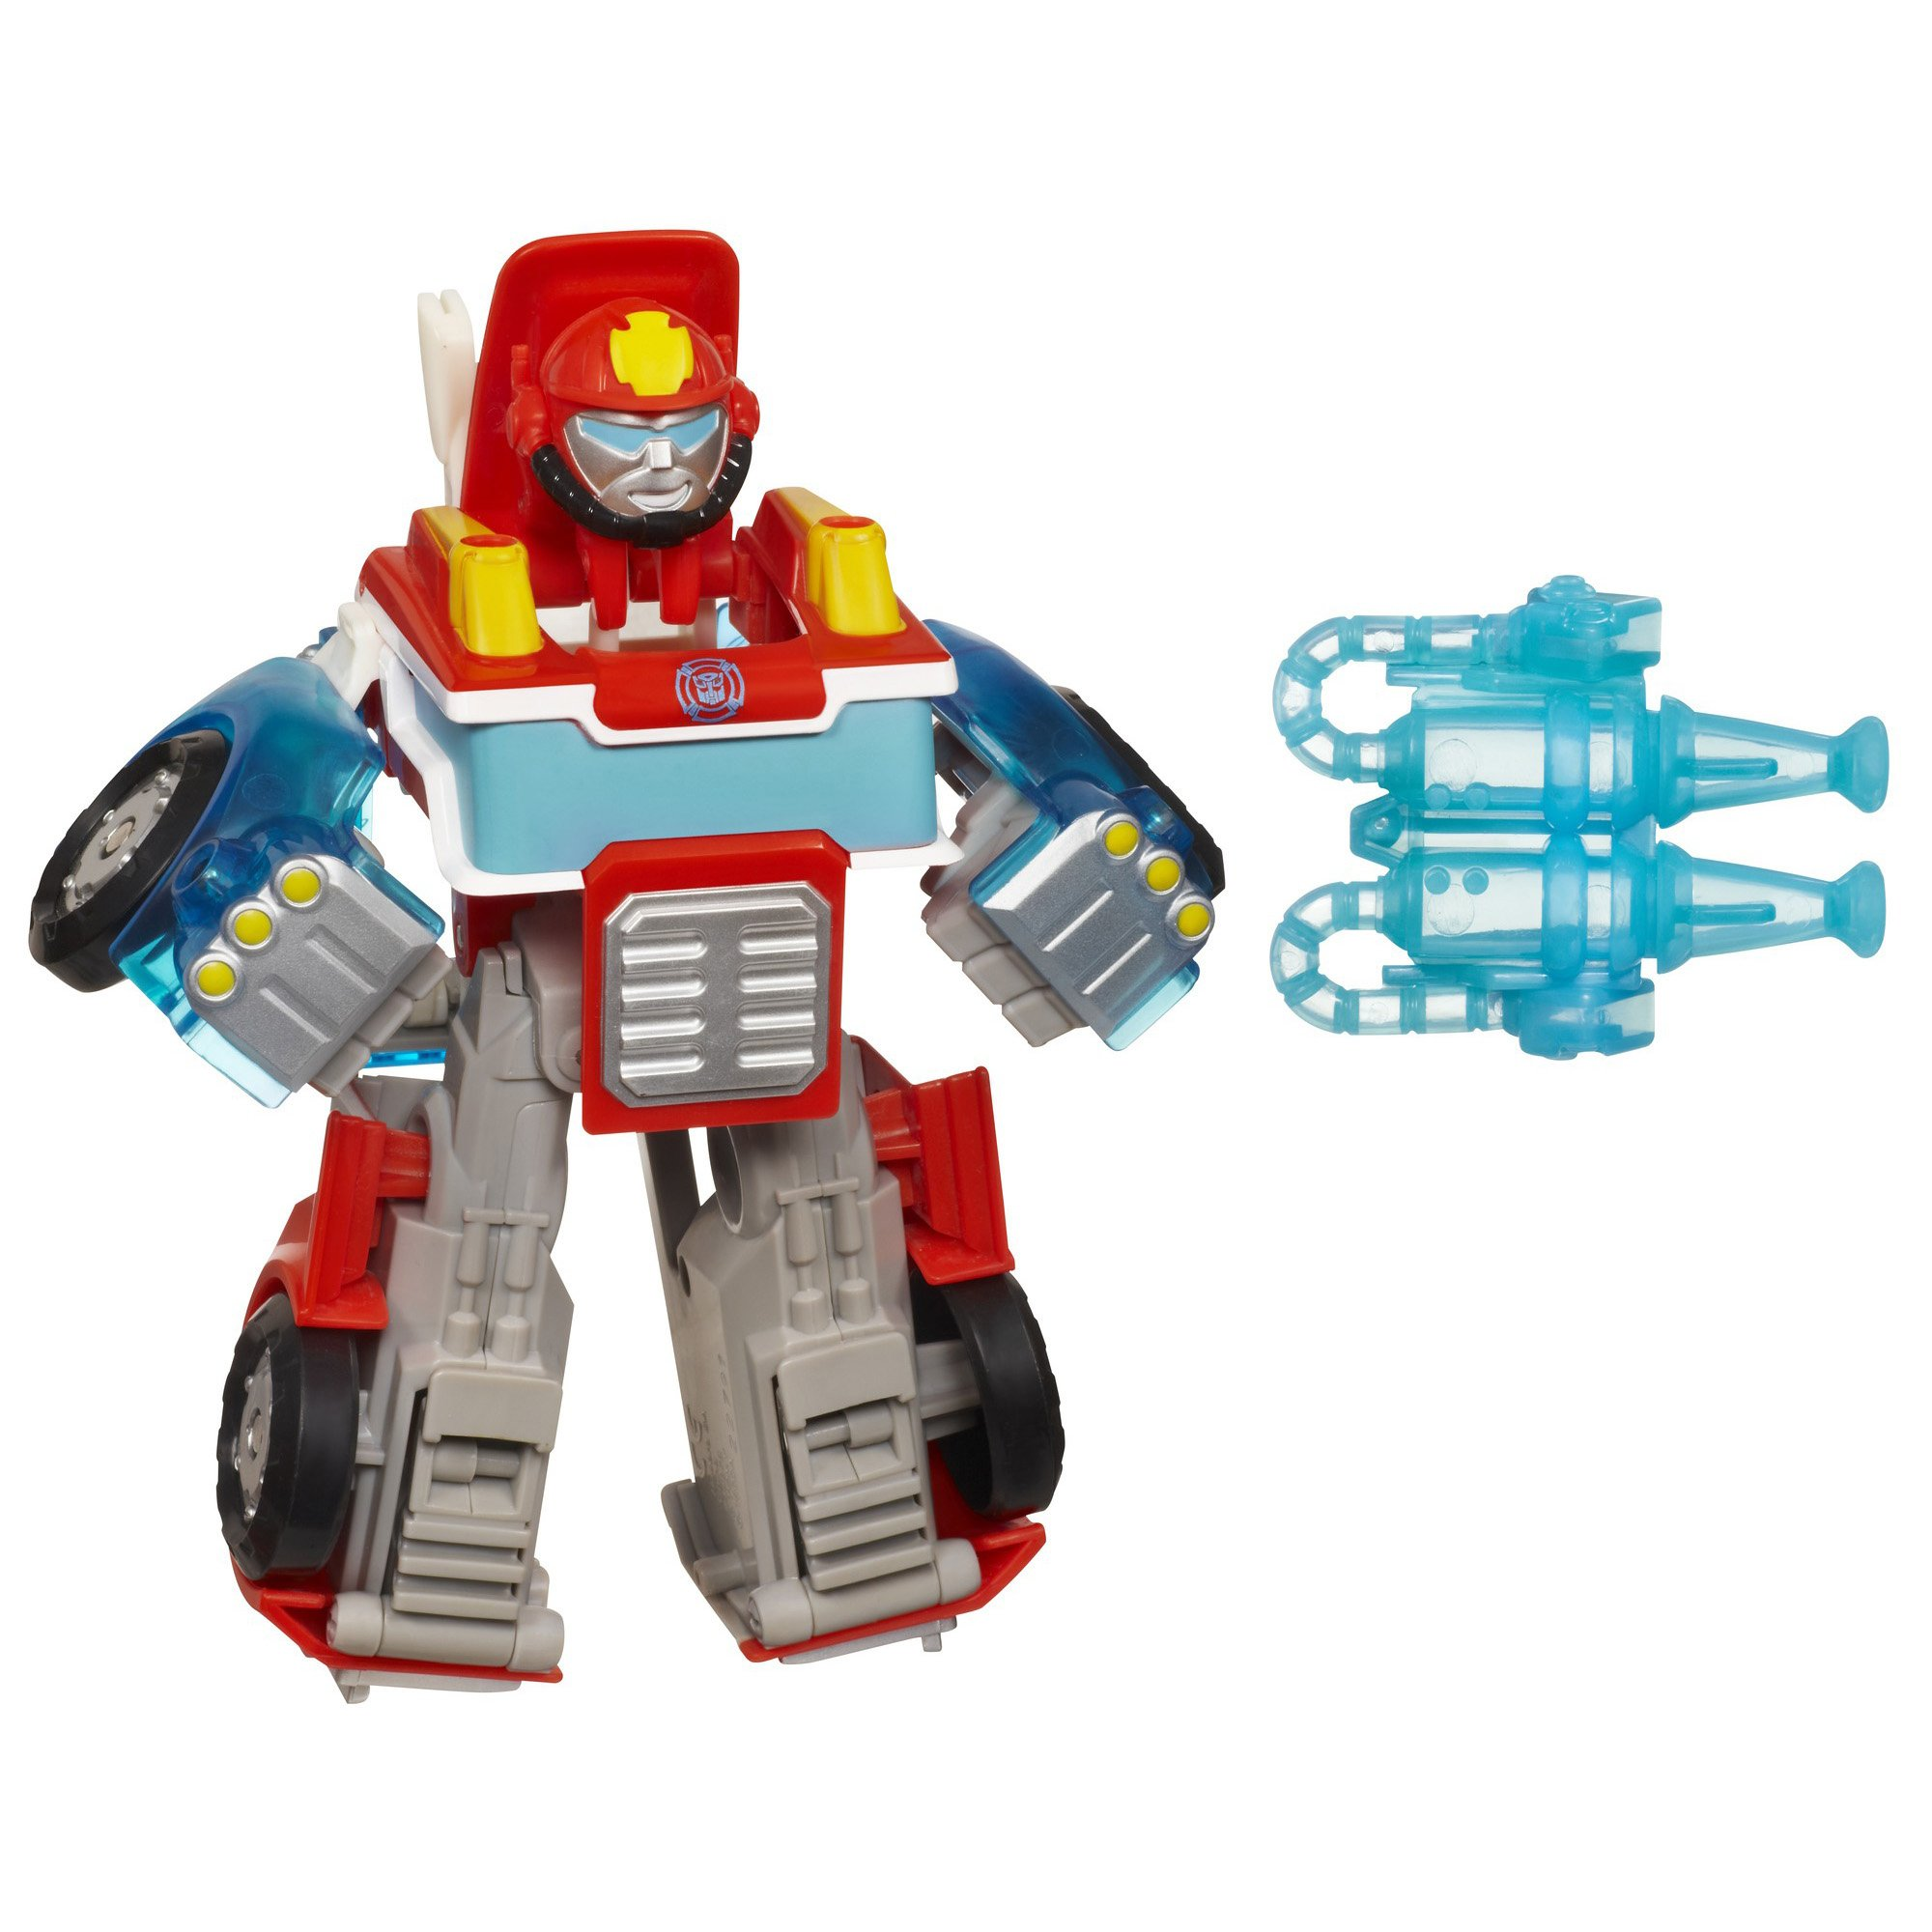 Playskool Heroes Transformers Rescue Bots Energize Heatwave the Fire-Bot Converting Toy Robot Action Figure, Toys for Kids Ages 3 and Up (Amazon Exclusive) by Transformers